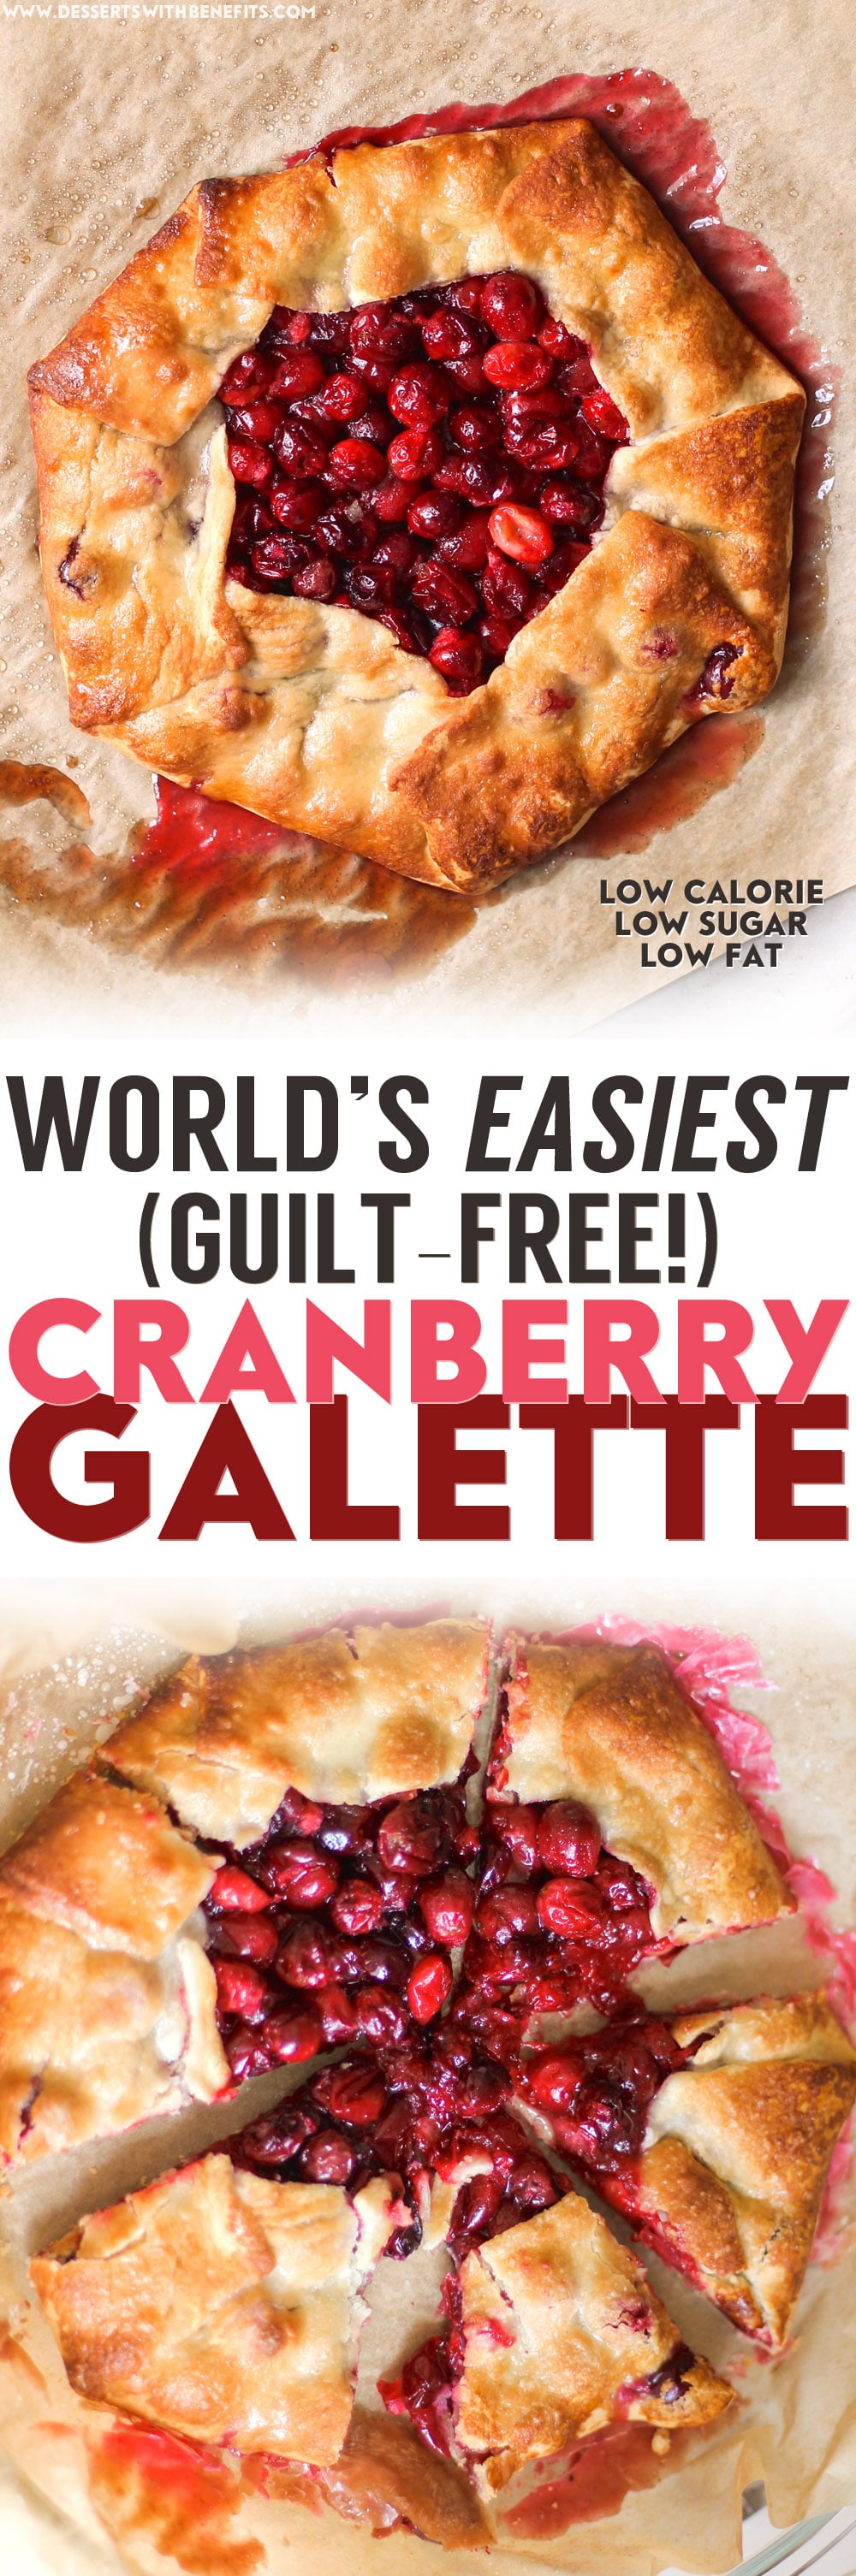 How to Make the World's EASIEST Galette! Quick and Lazy Guilt-Free Cranberry Galette (low calorie, low fat, low sugar) - Healthy Dessert Recipes at Desserts with Benefits